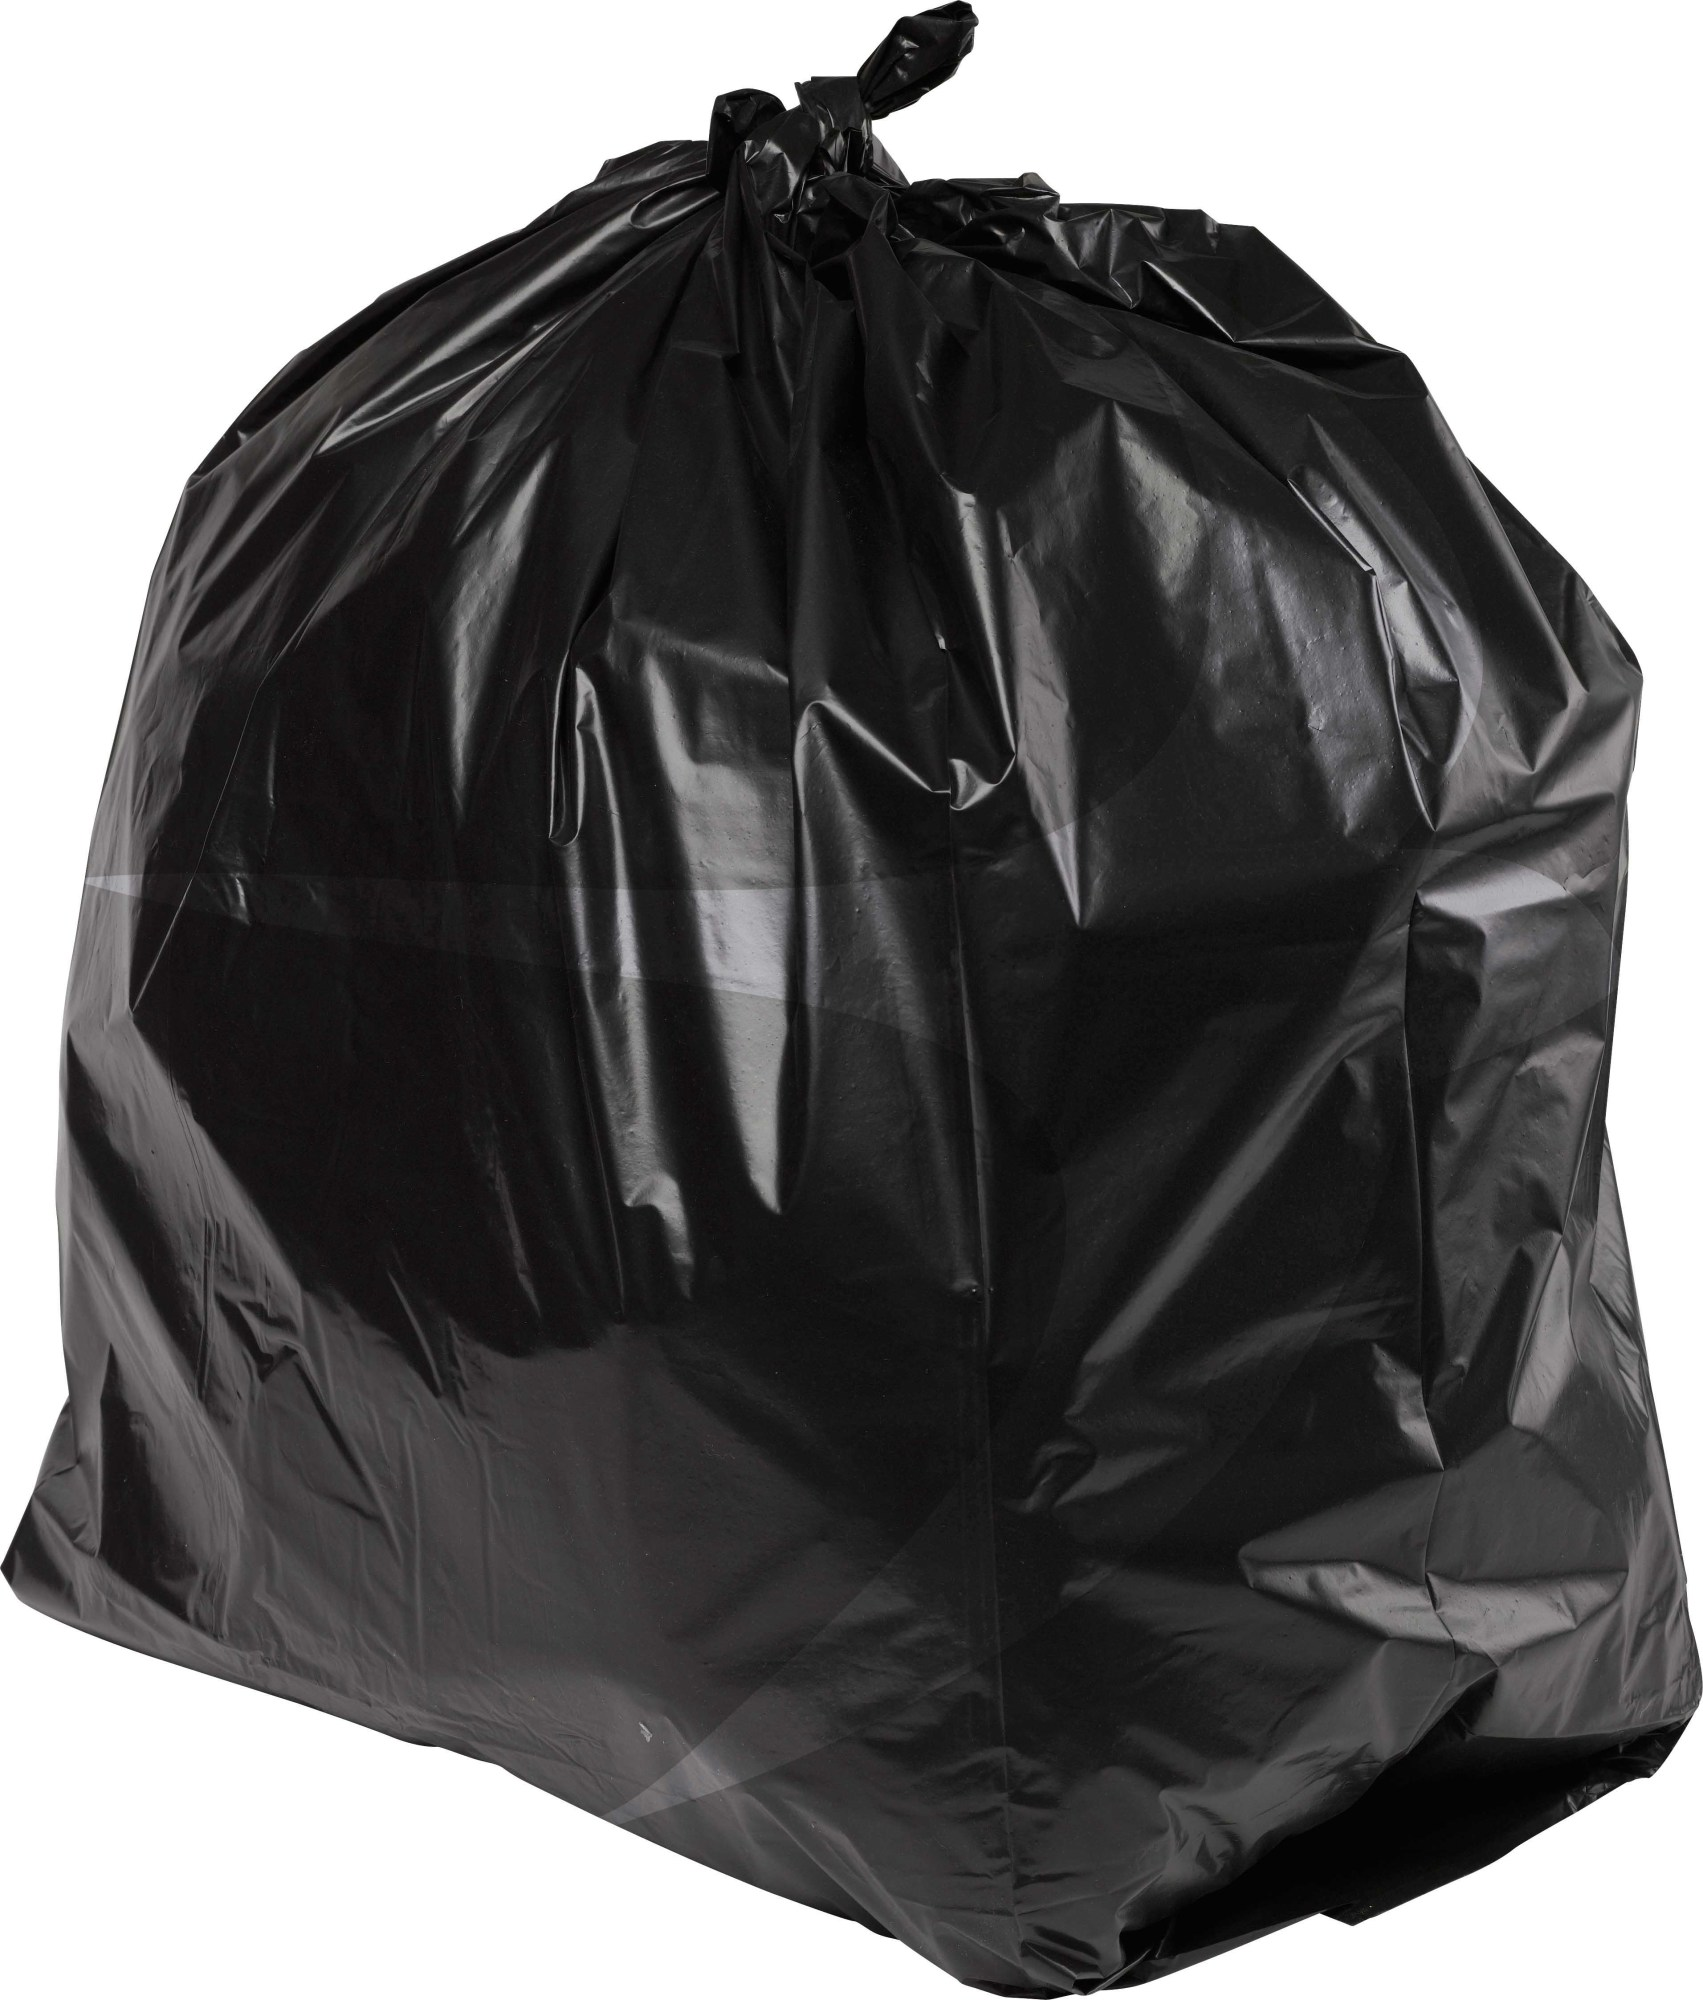 18 x 29 x 39' H.T Black Refuse Sacks